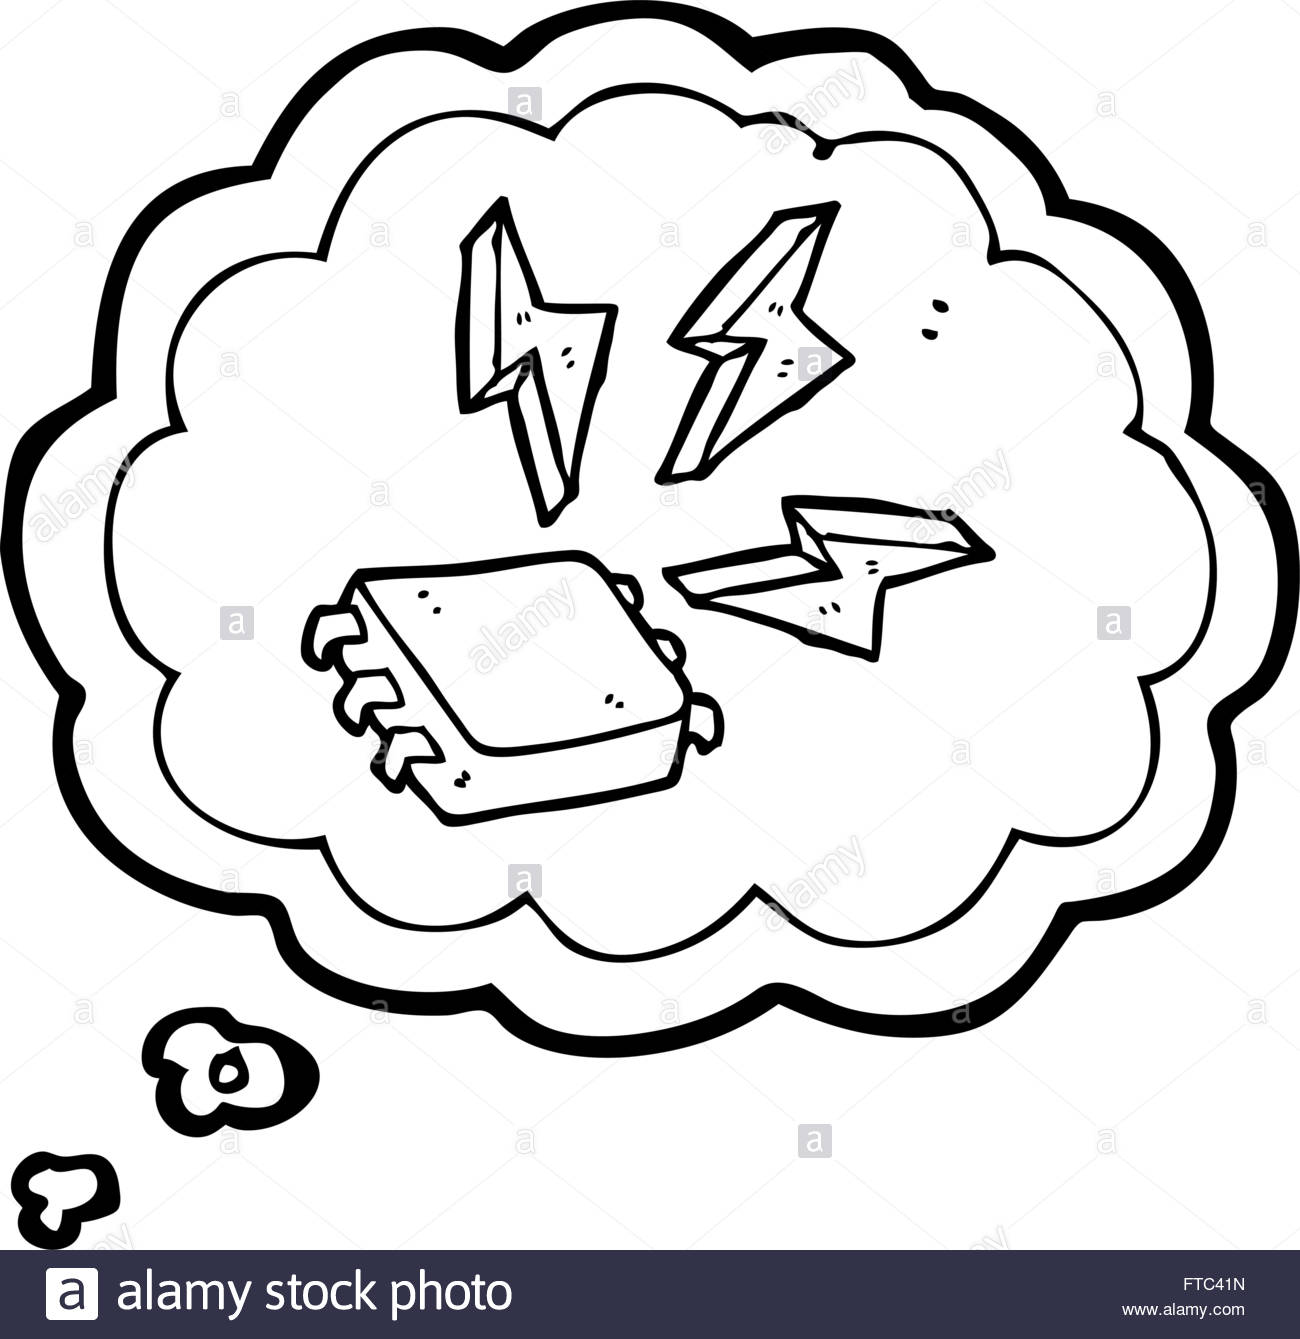 1300x1339 Freehand Drawn Thought Bubble Cartoon Computer Chip Stock Vector